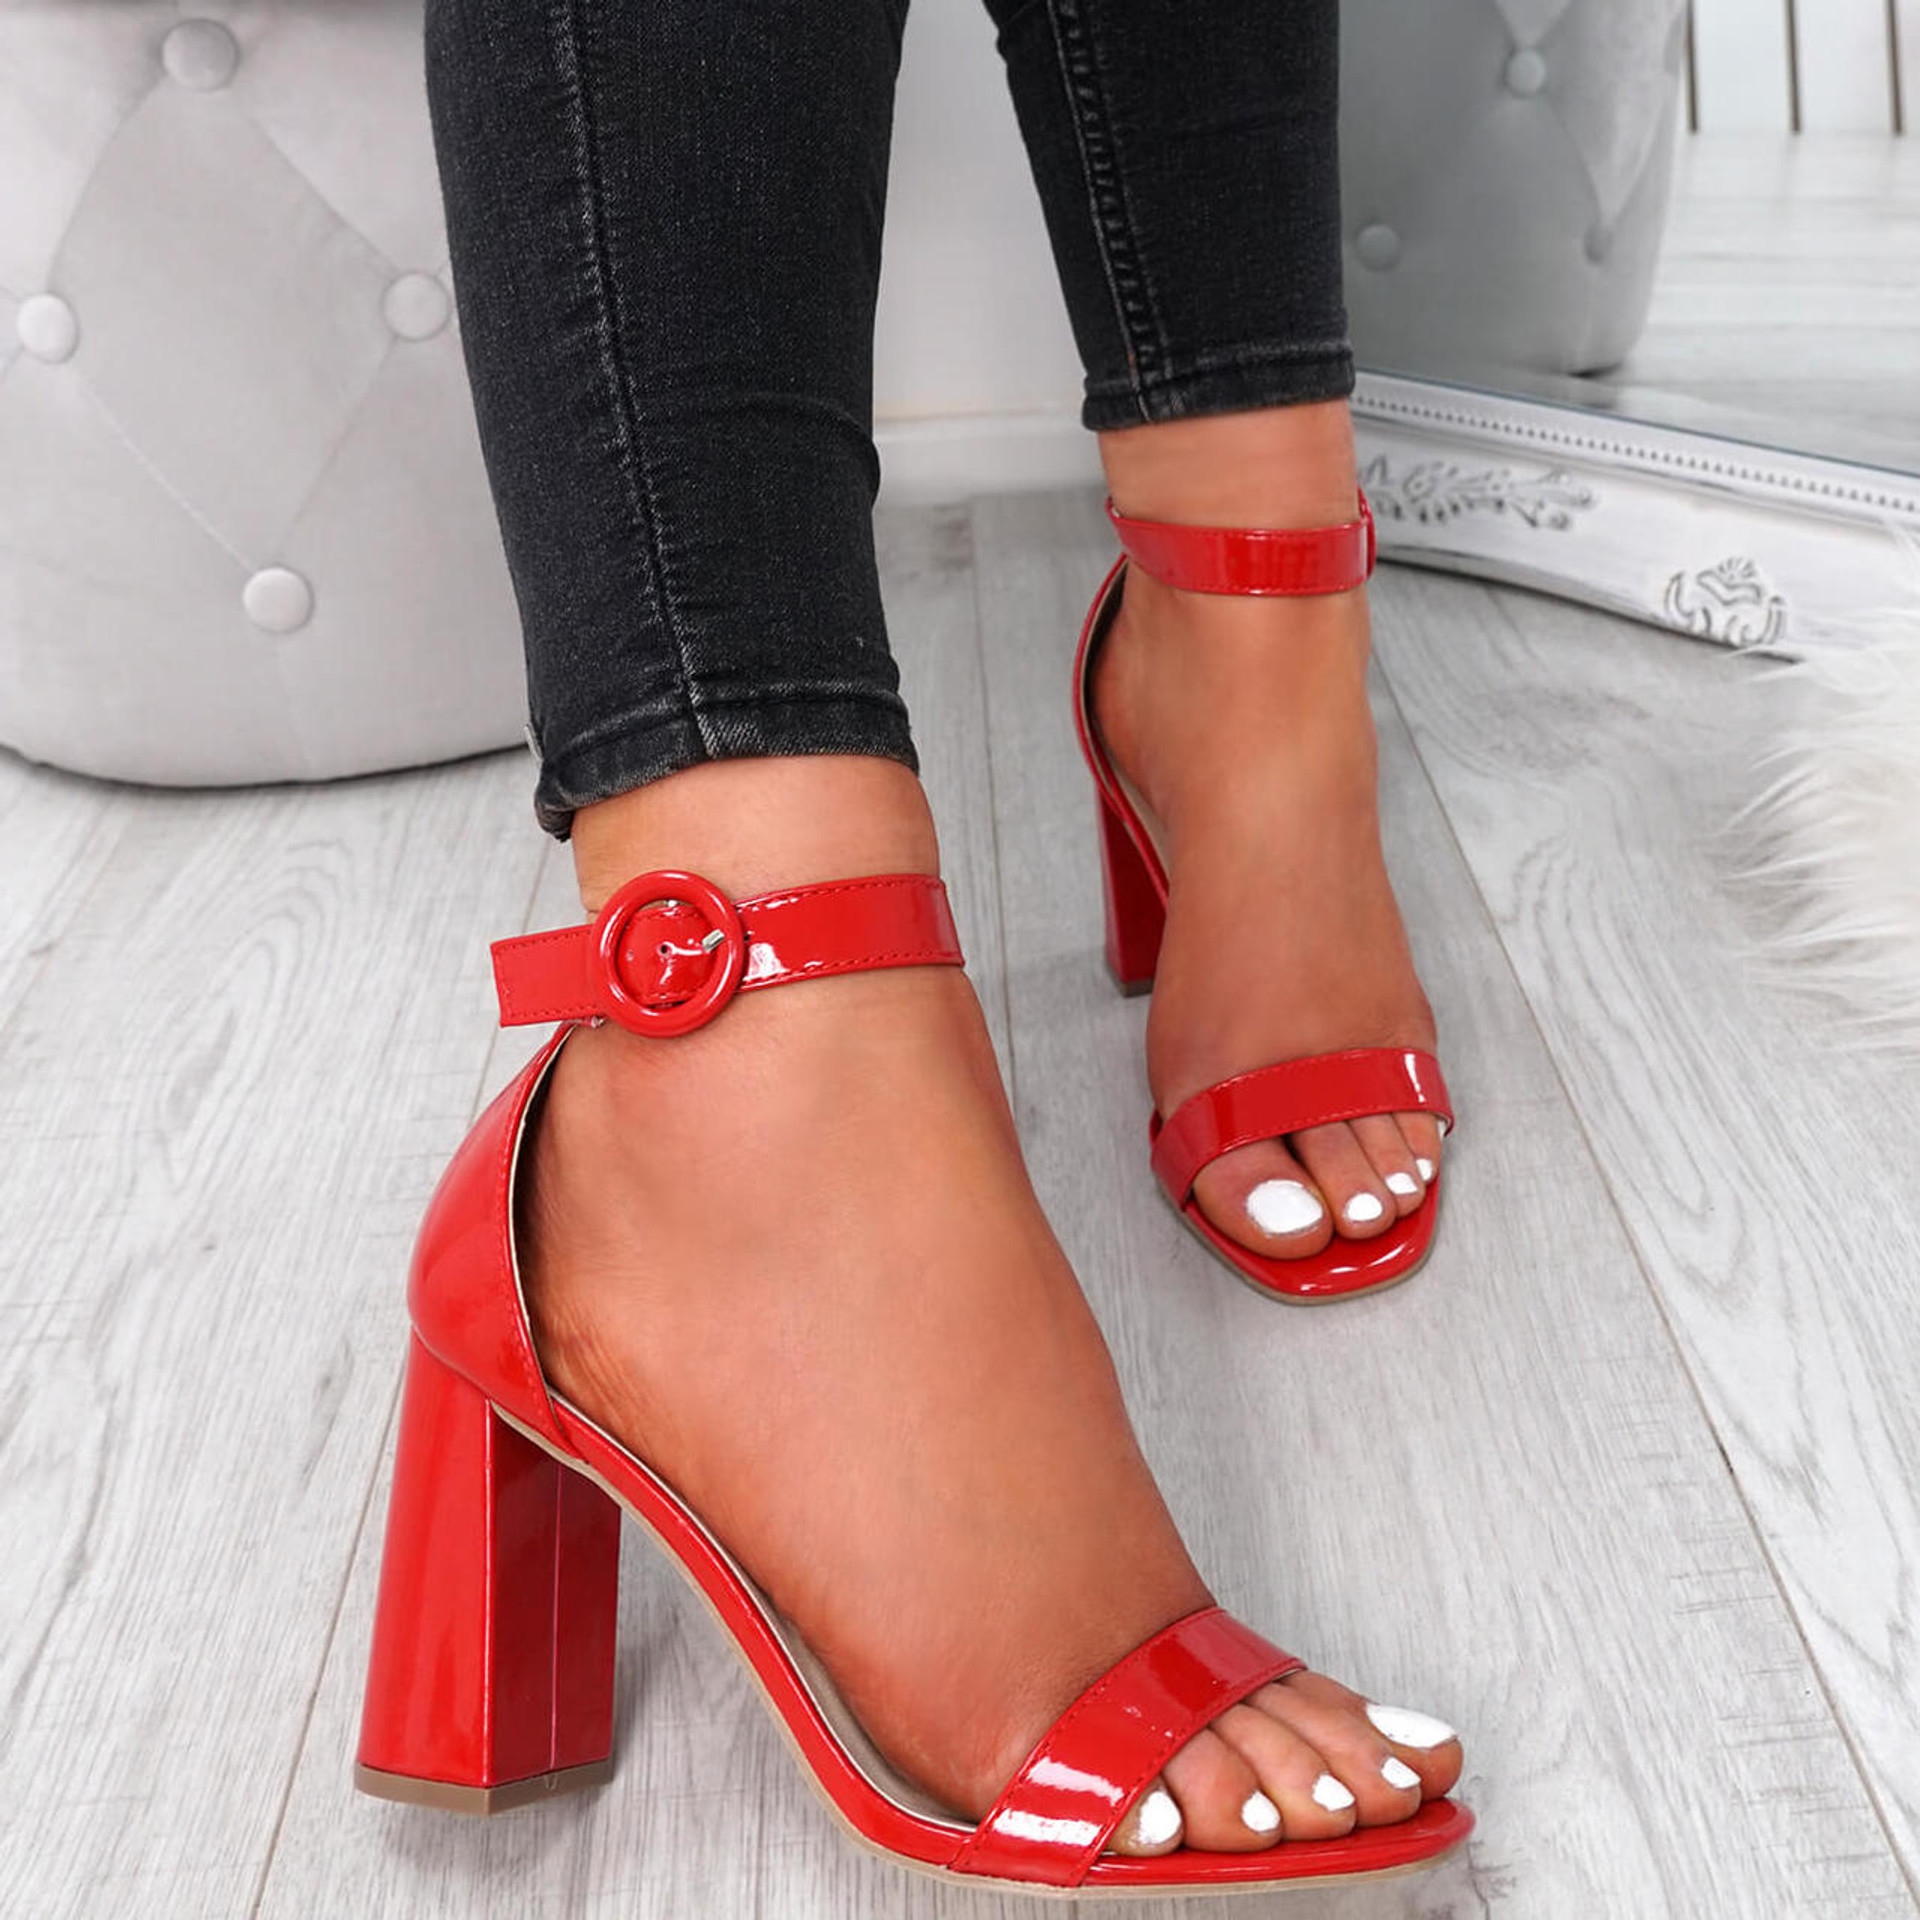 Yelum Red Ankle Strap Sandals